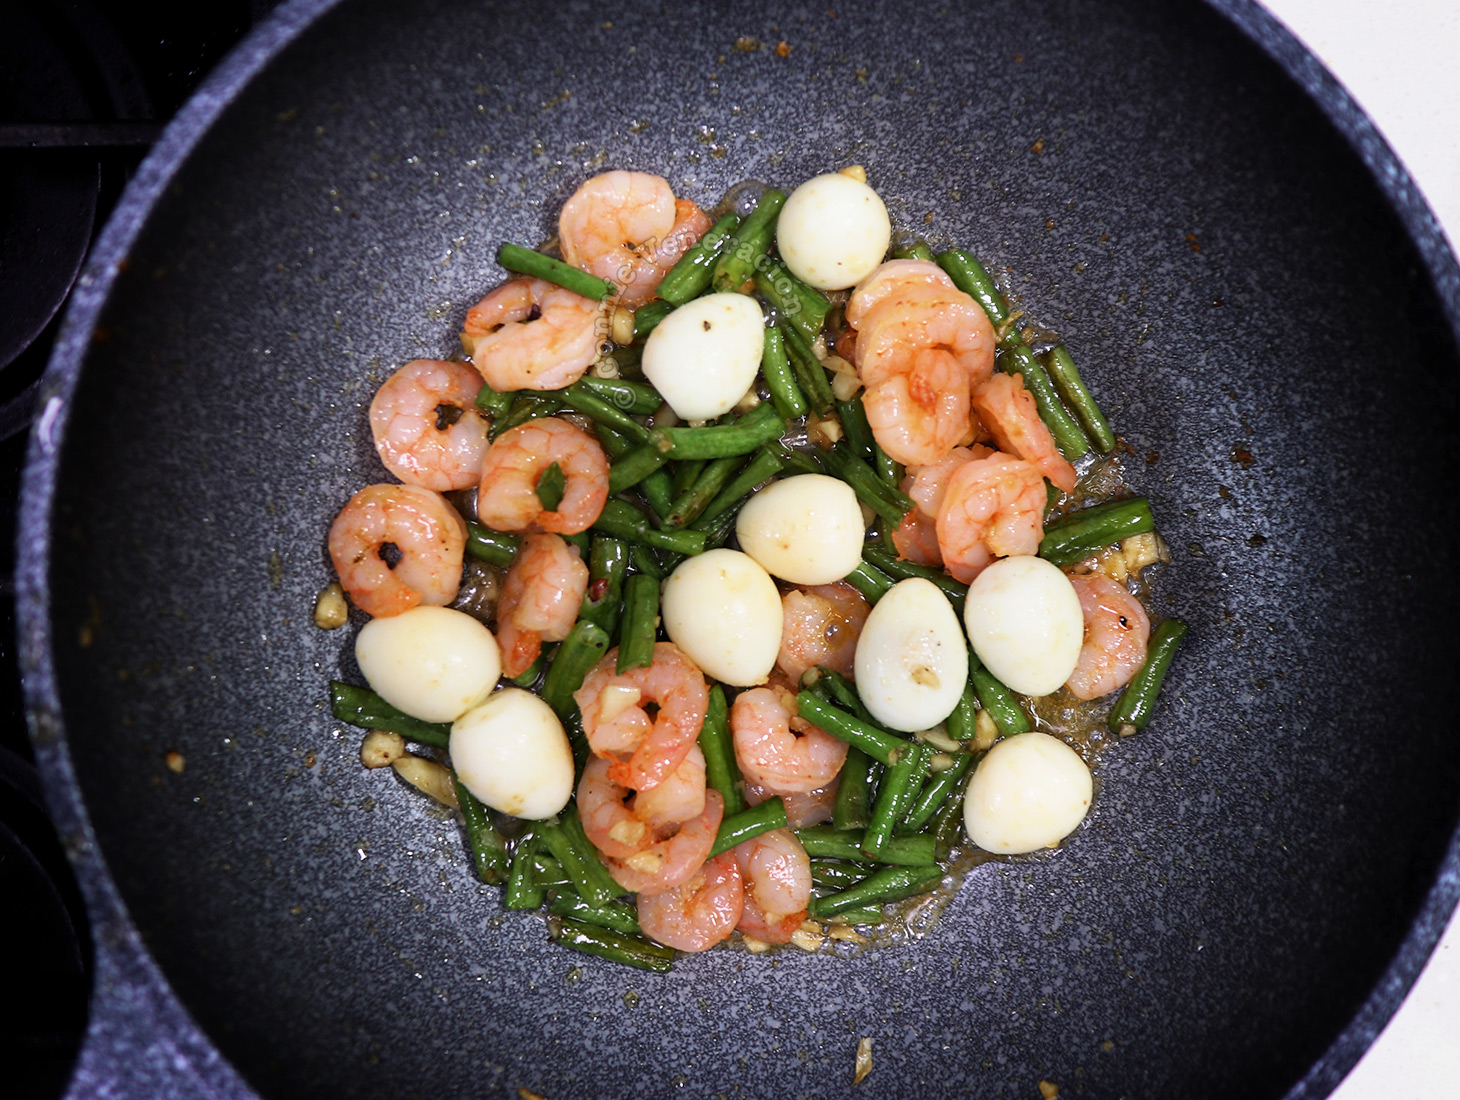 Sitaw Guisado (Sauteed String Beans) with Shrimps and Quail Eggs Recipe